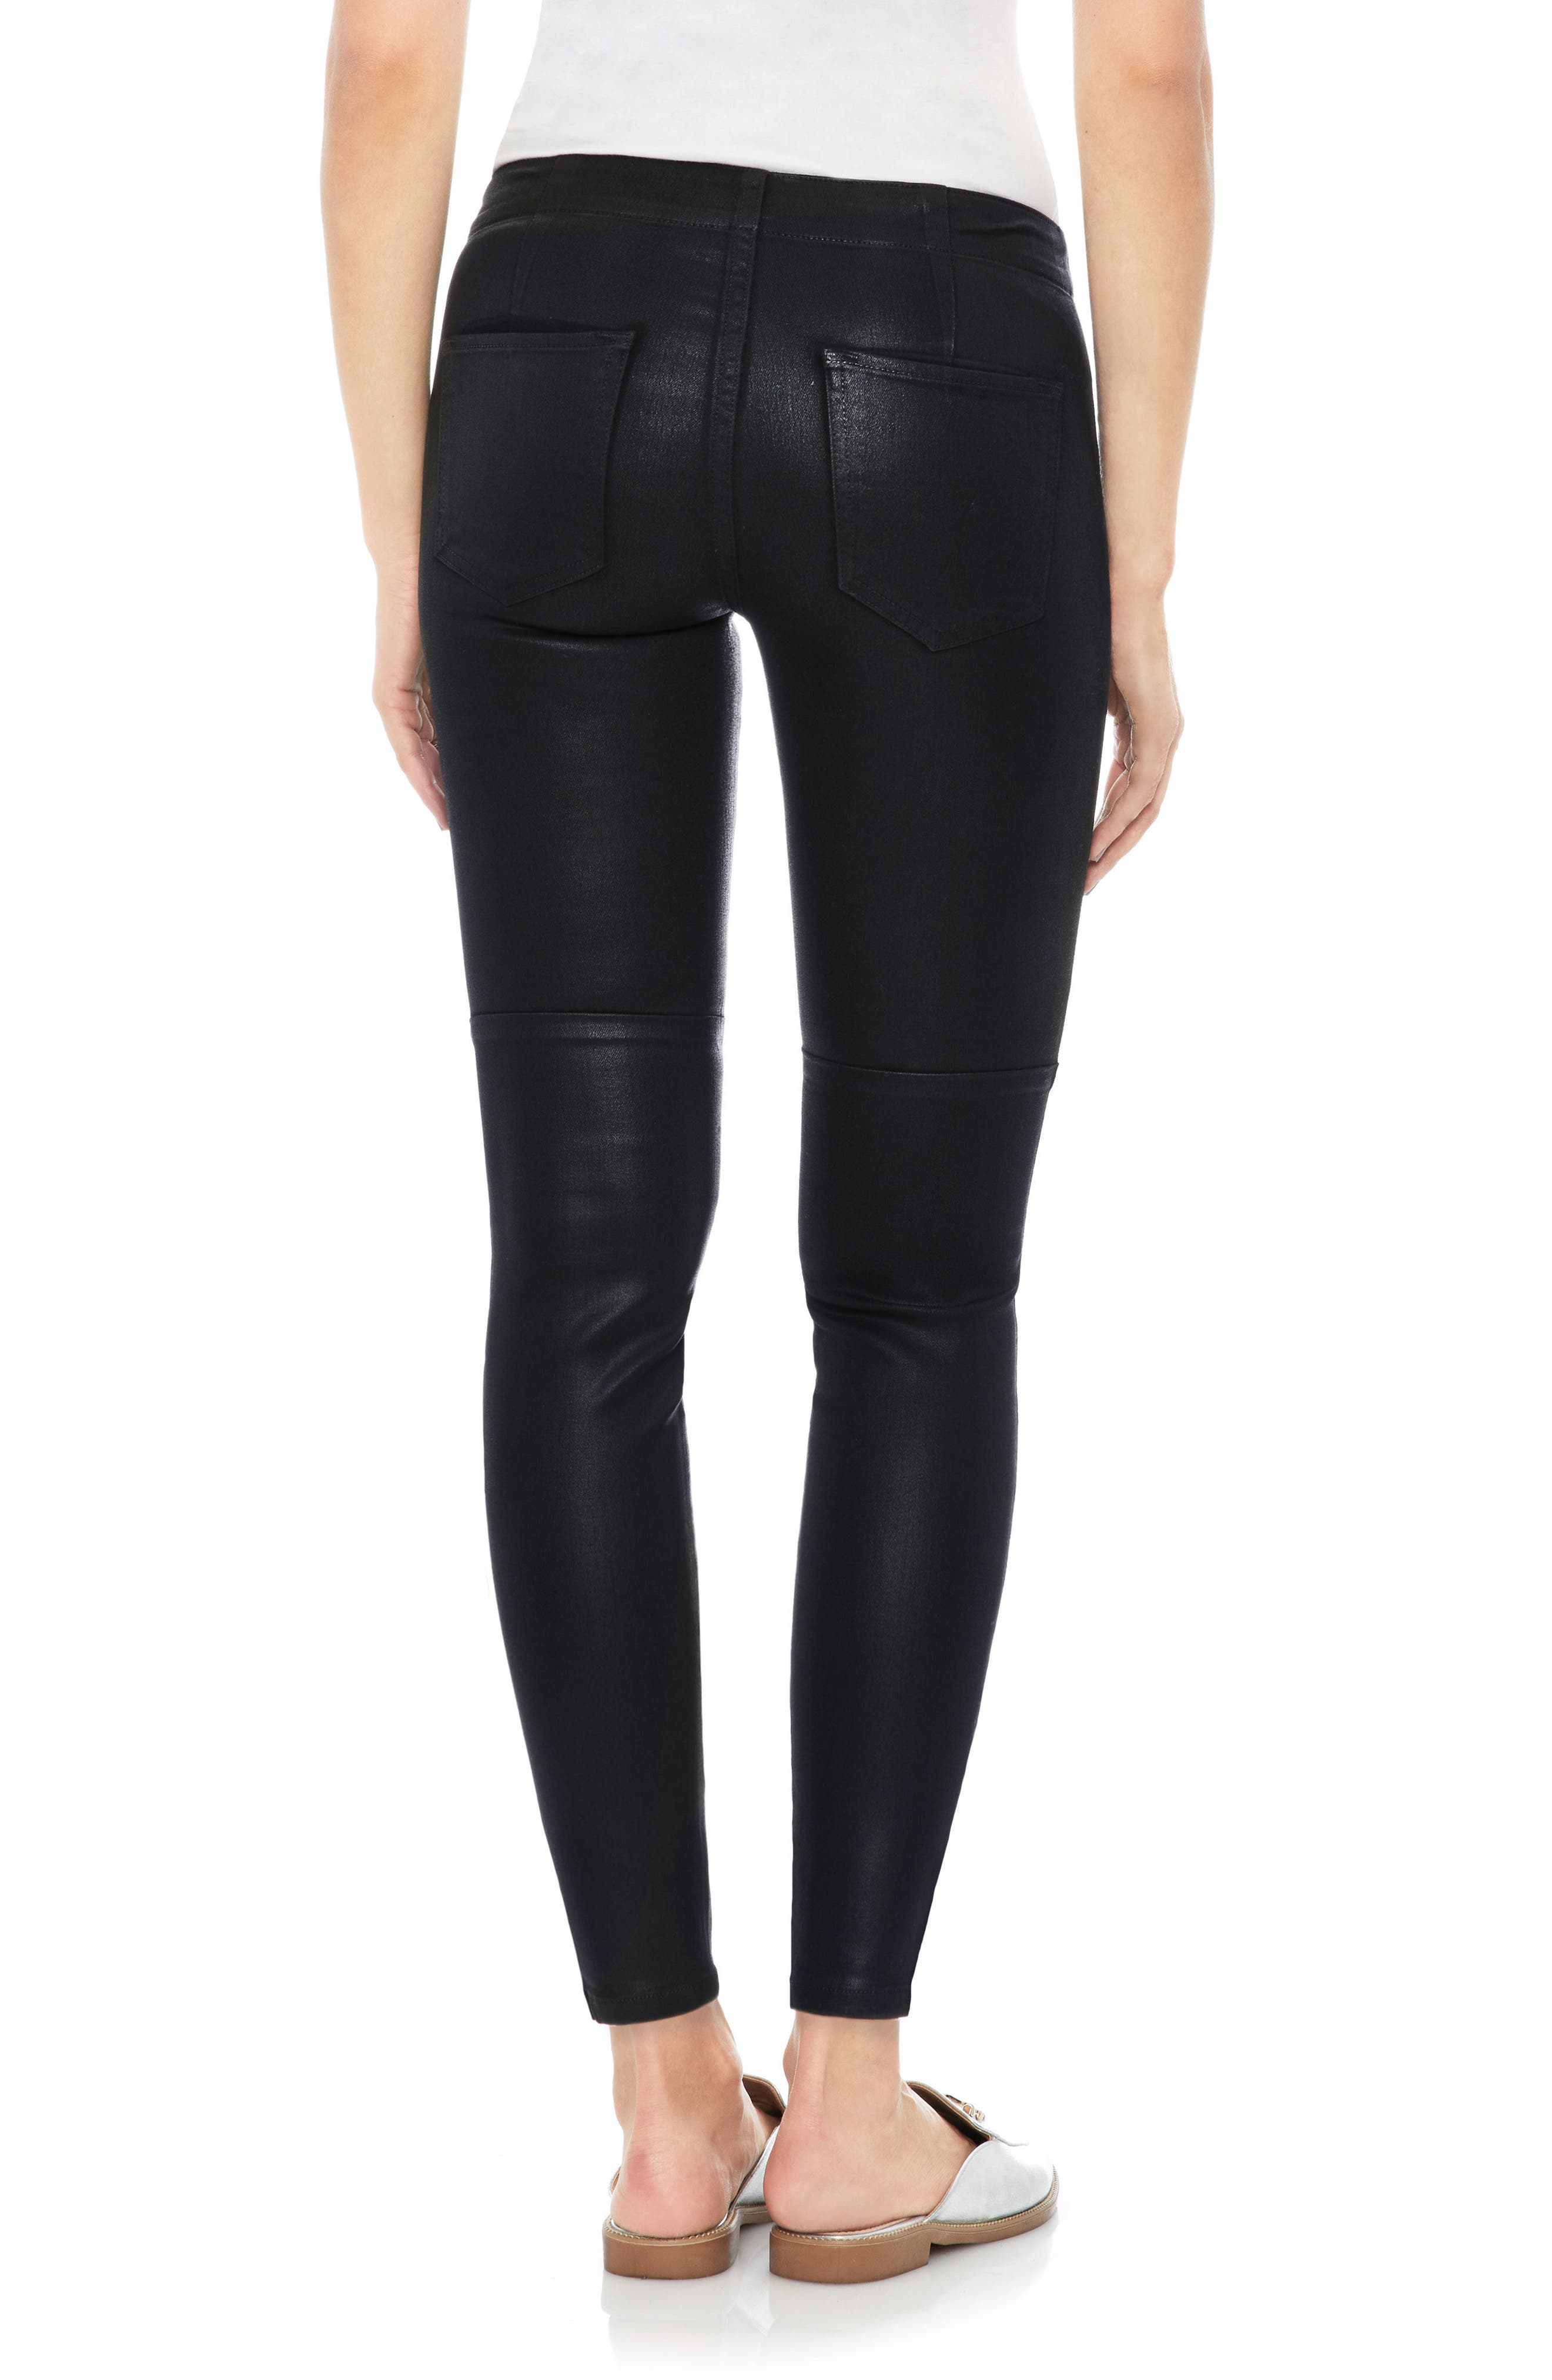 Taylor Hill x Joe's Icon Coated Ankle Skinny Pants,                             Alternate thumbnail 2, color,                             011